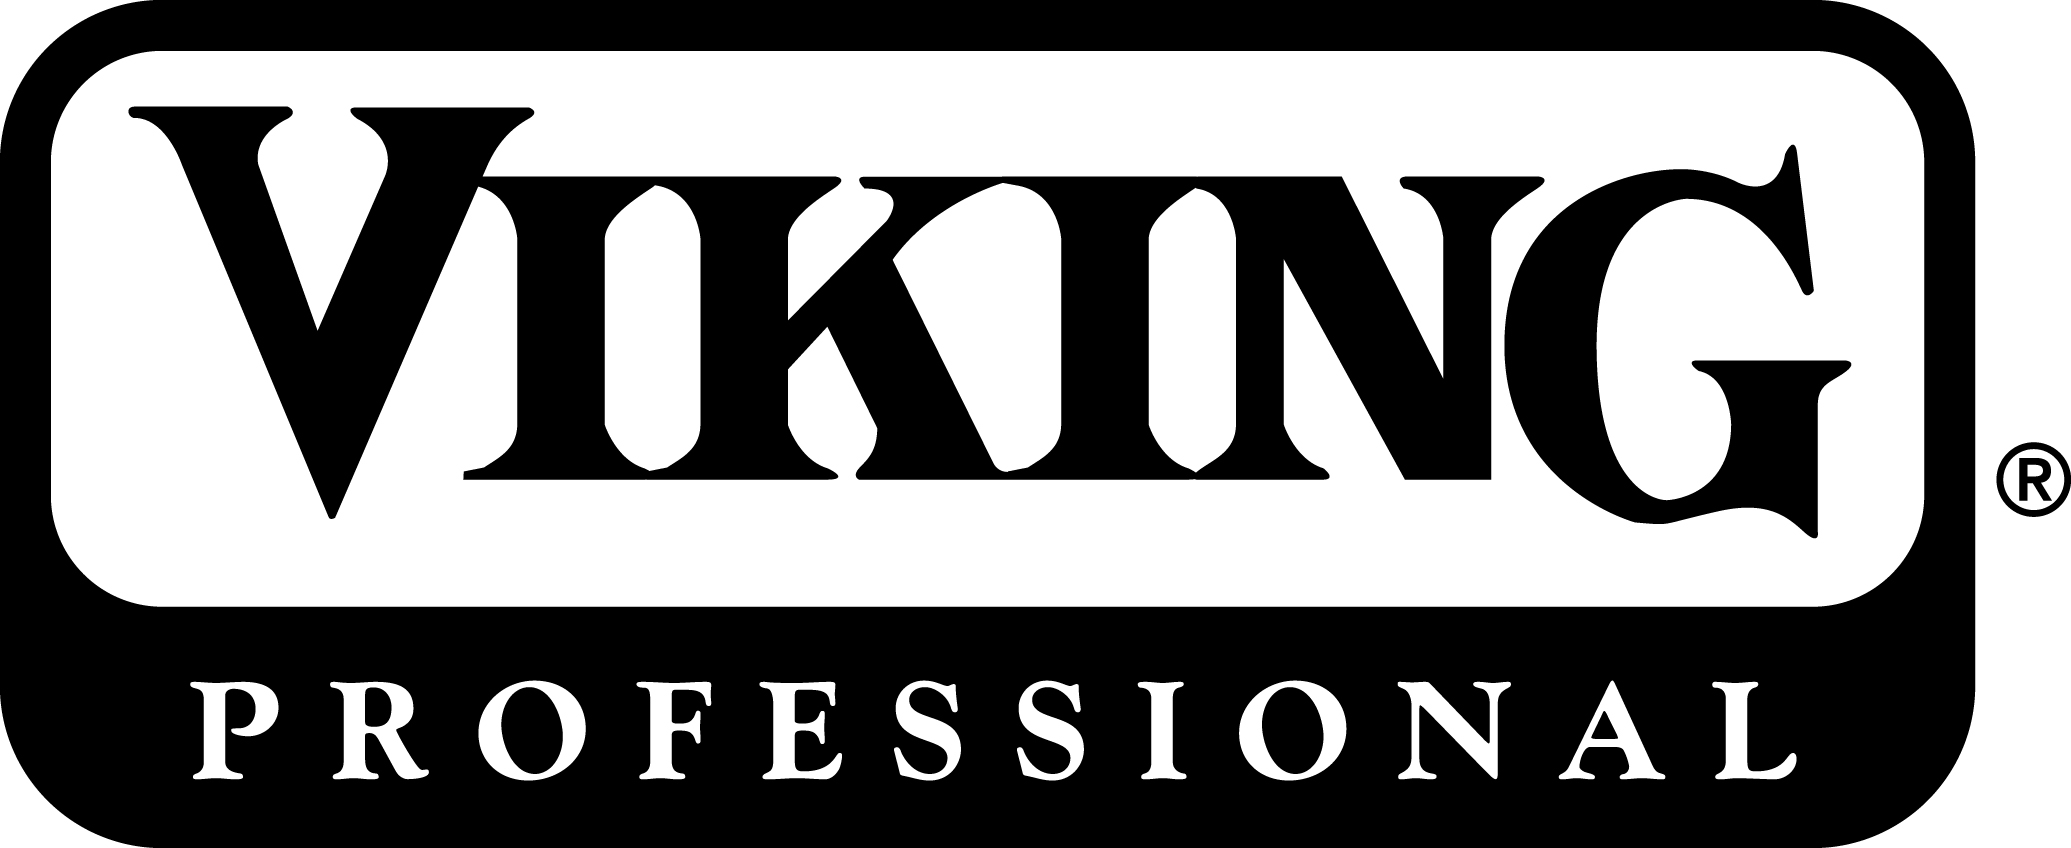 Viking Fix My Oven, Kenmore Oven Repair